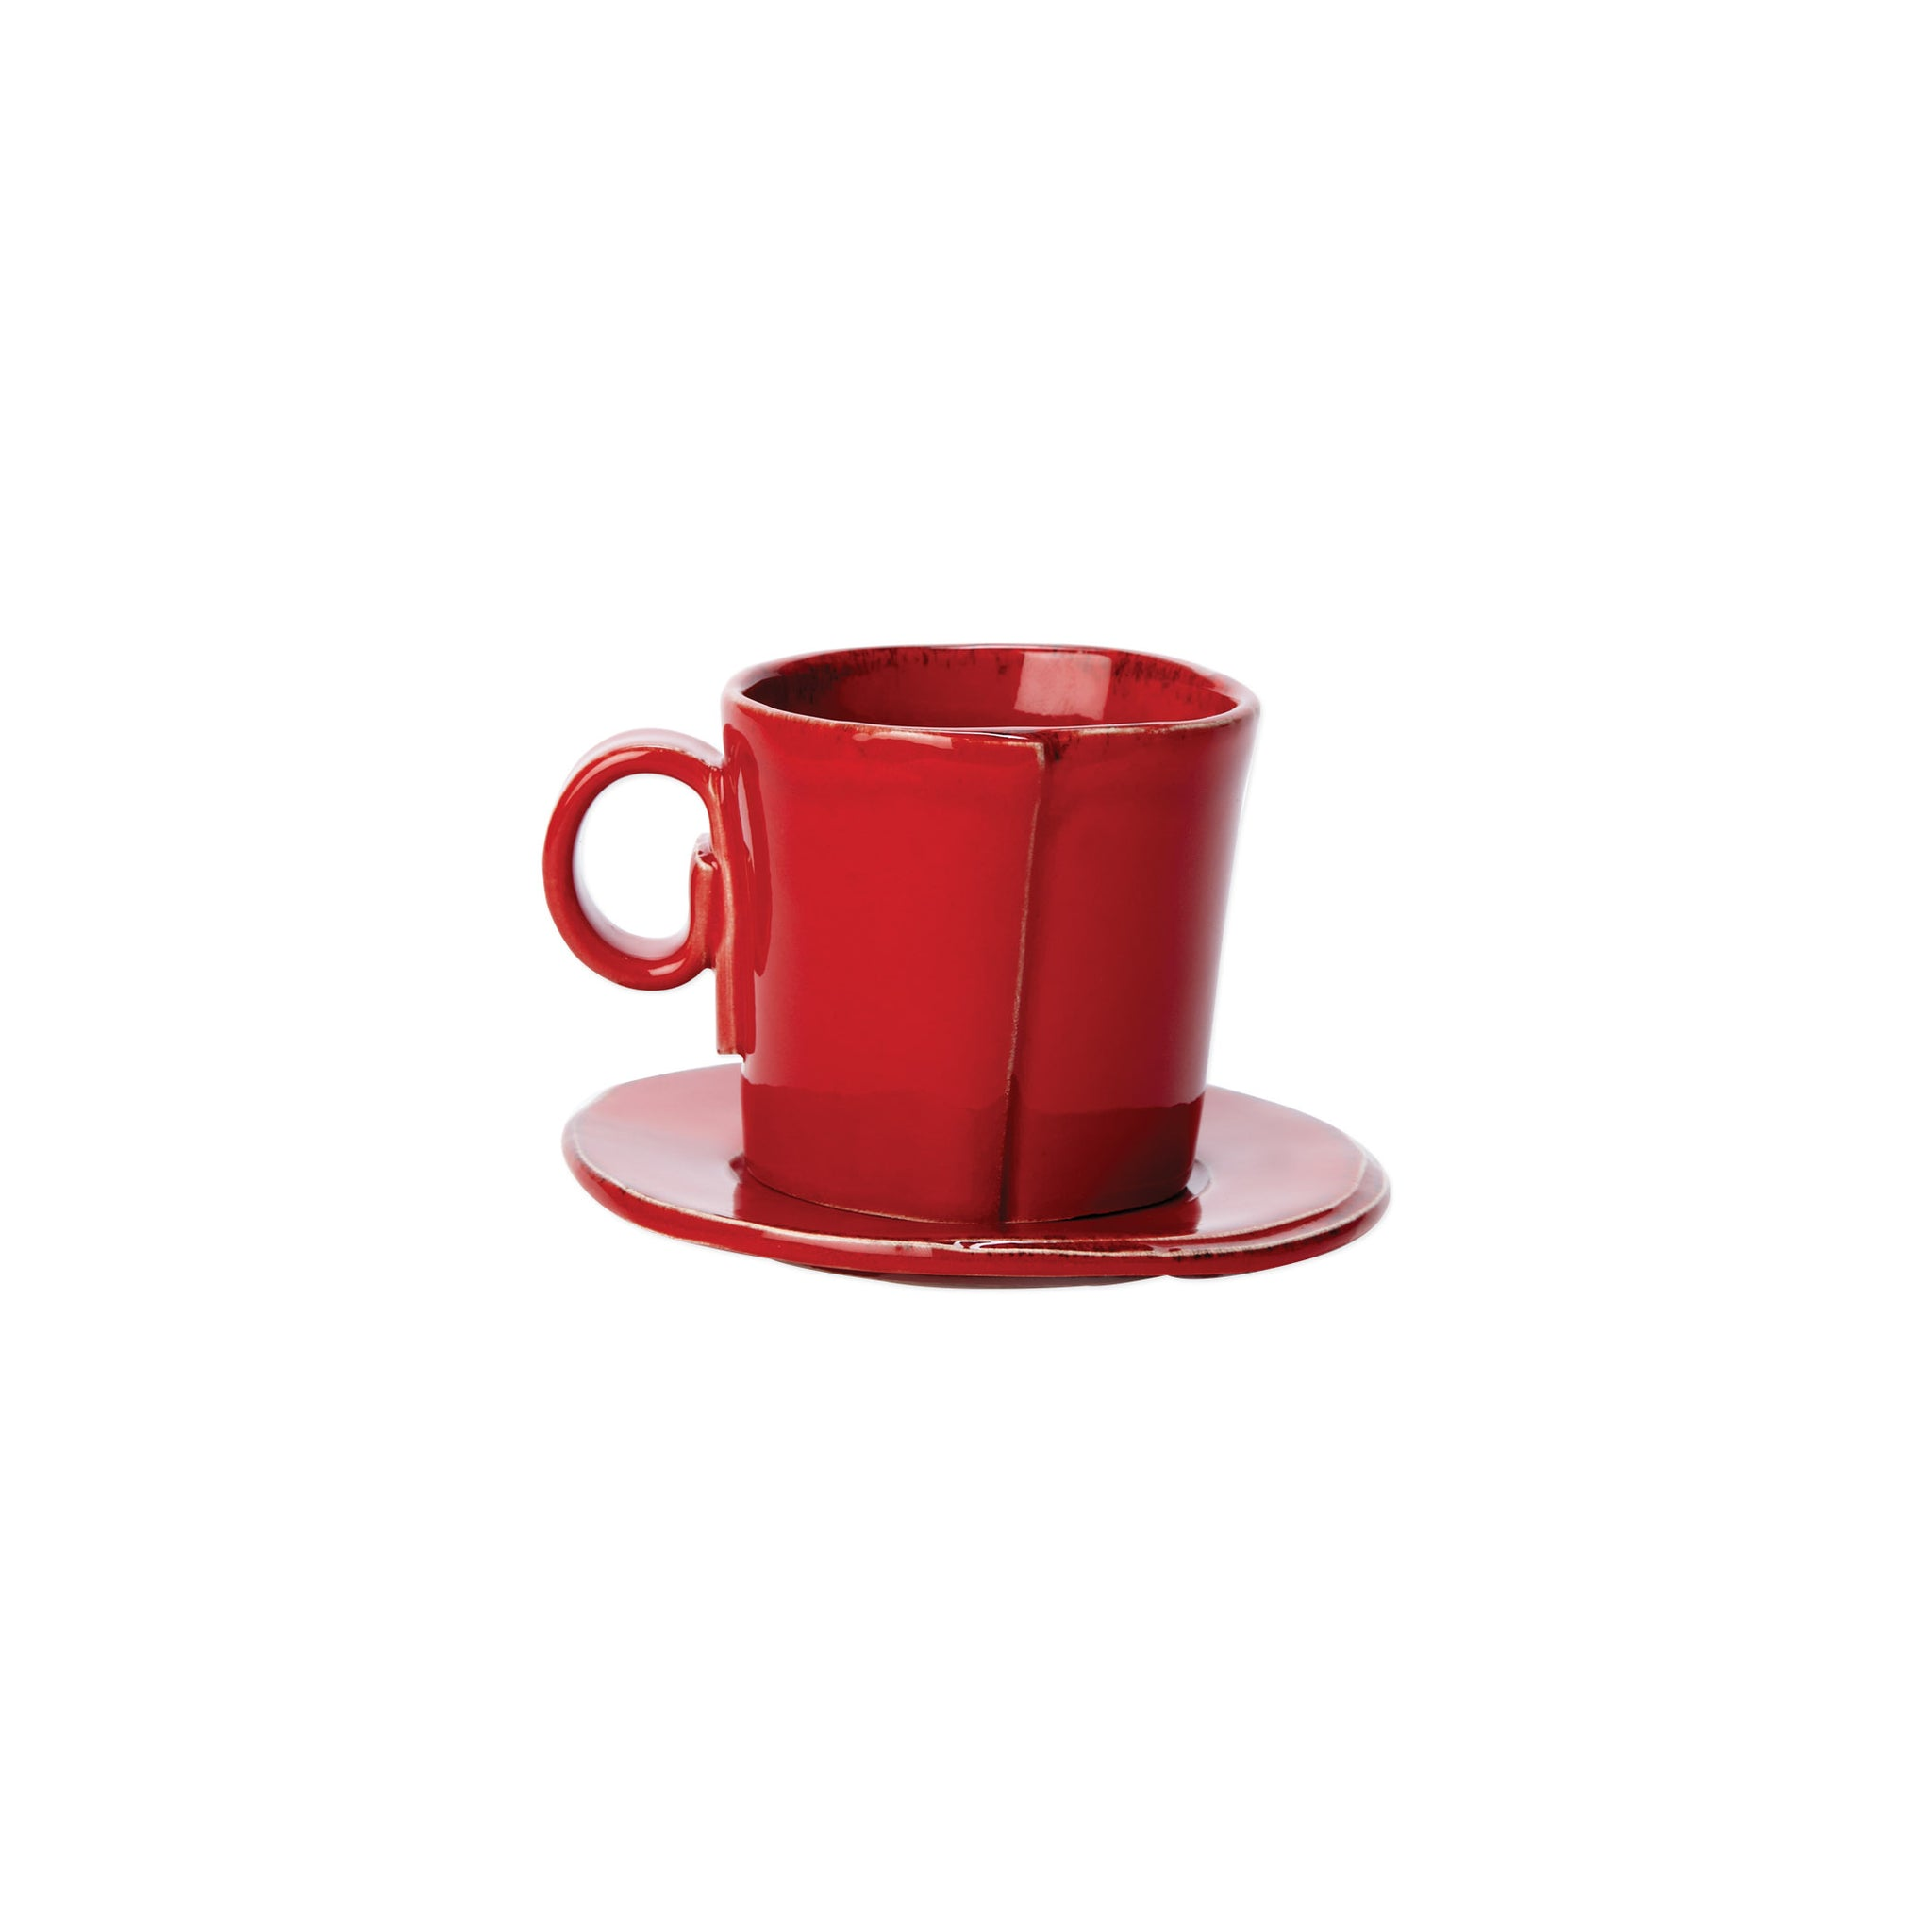 Lastra Espresso Cup and Saucer - Set of 4 - Red